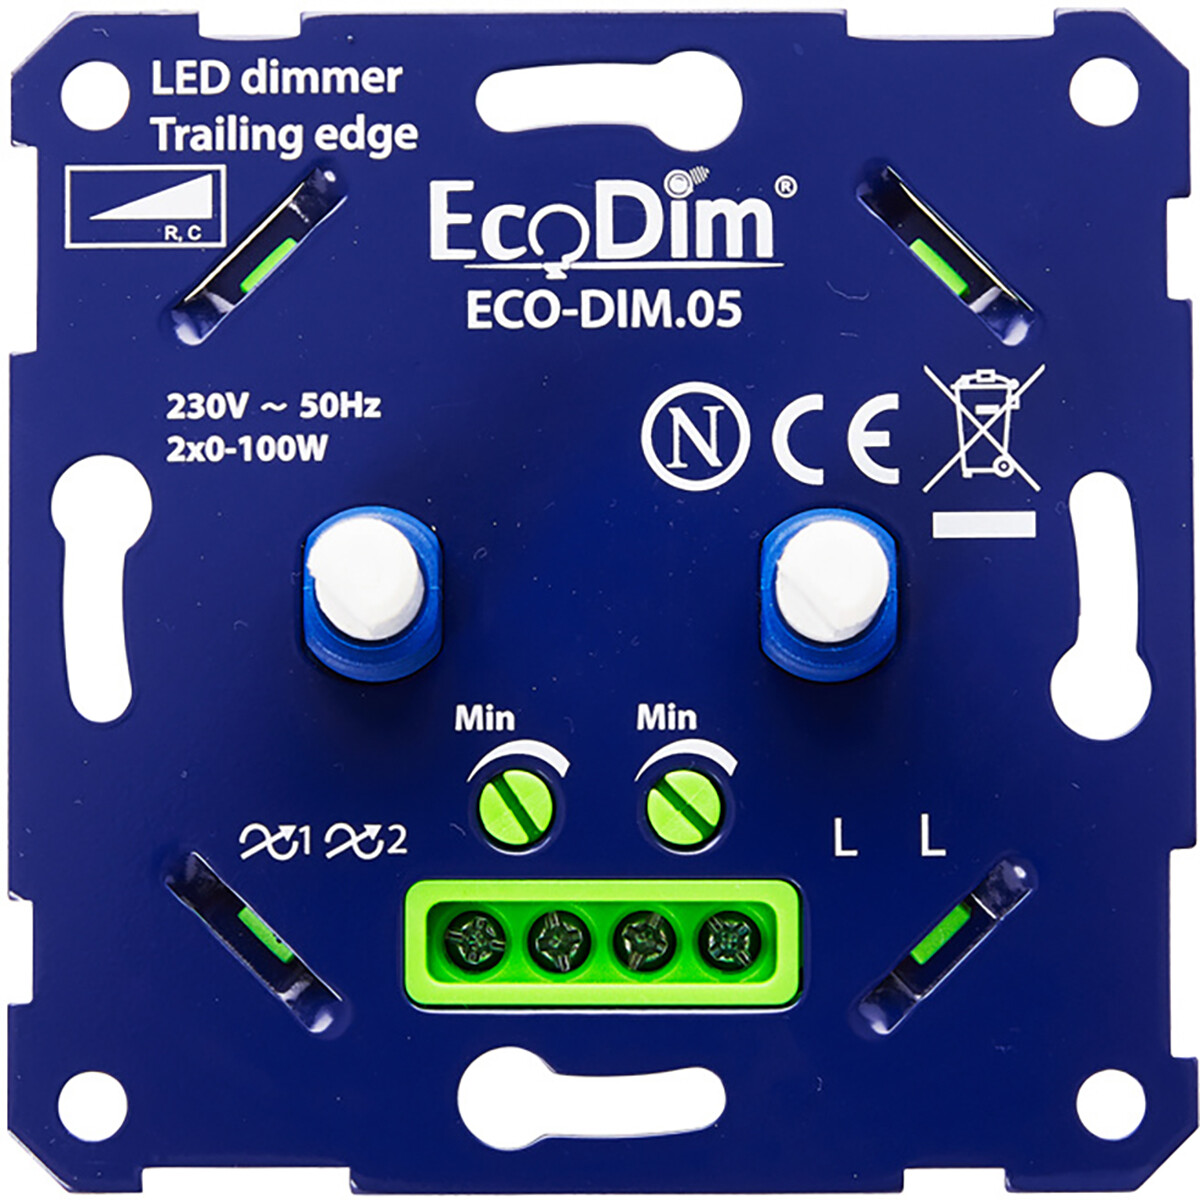 EcoDim - LED DUO Dimmer - ECO-DIM.05 - Fase Afsnijding RC - Dubbele Inbouwdimmer - Dubbel Knop - 0-1